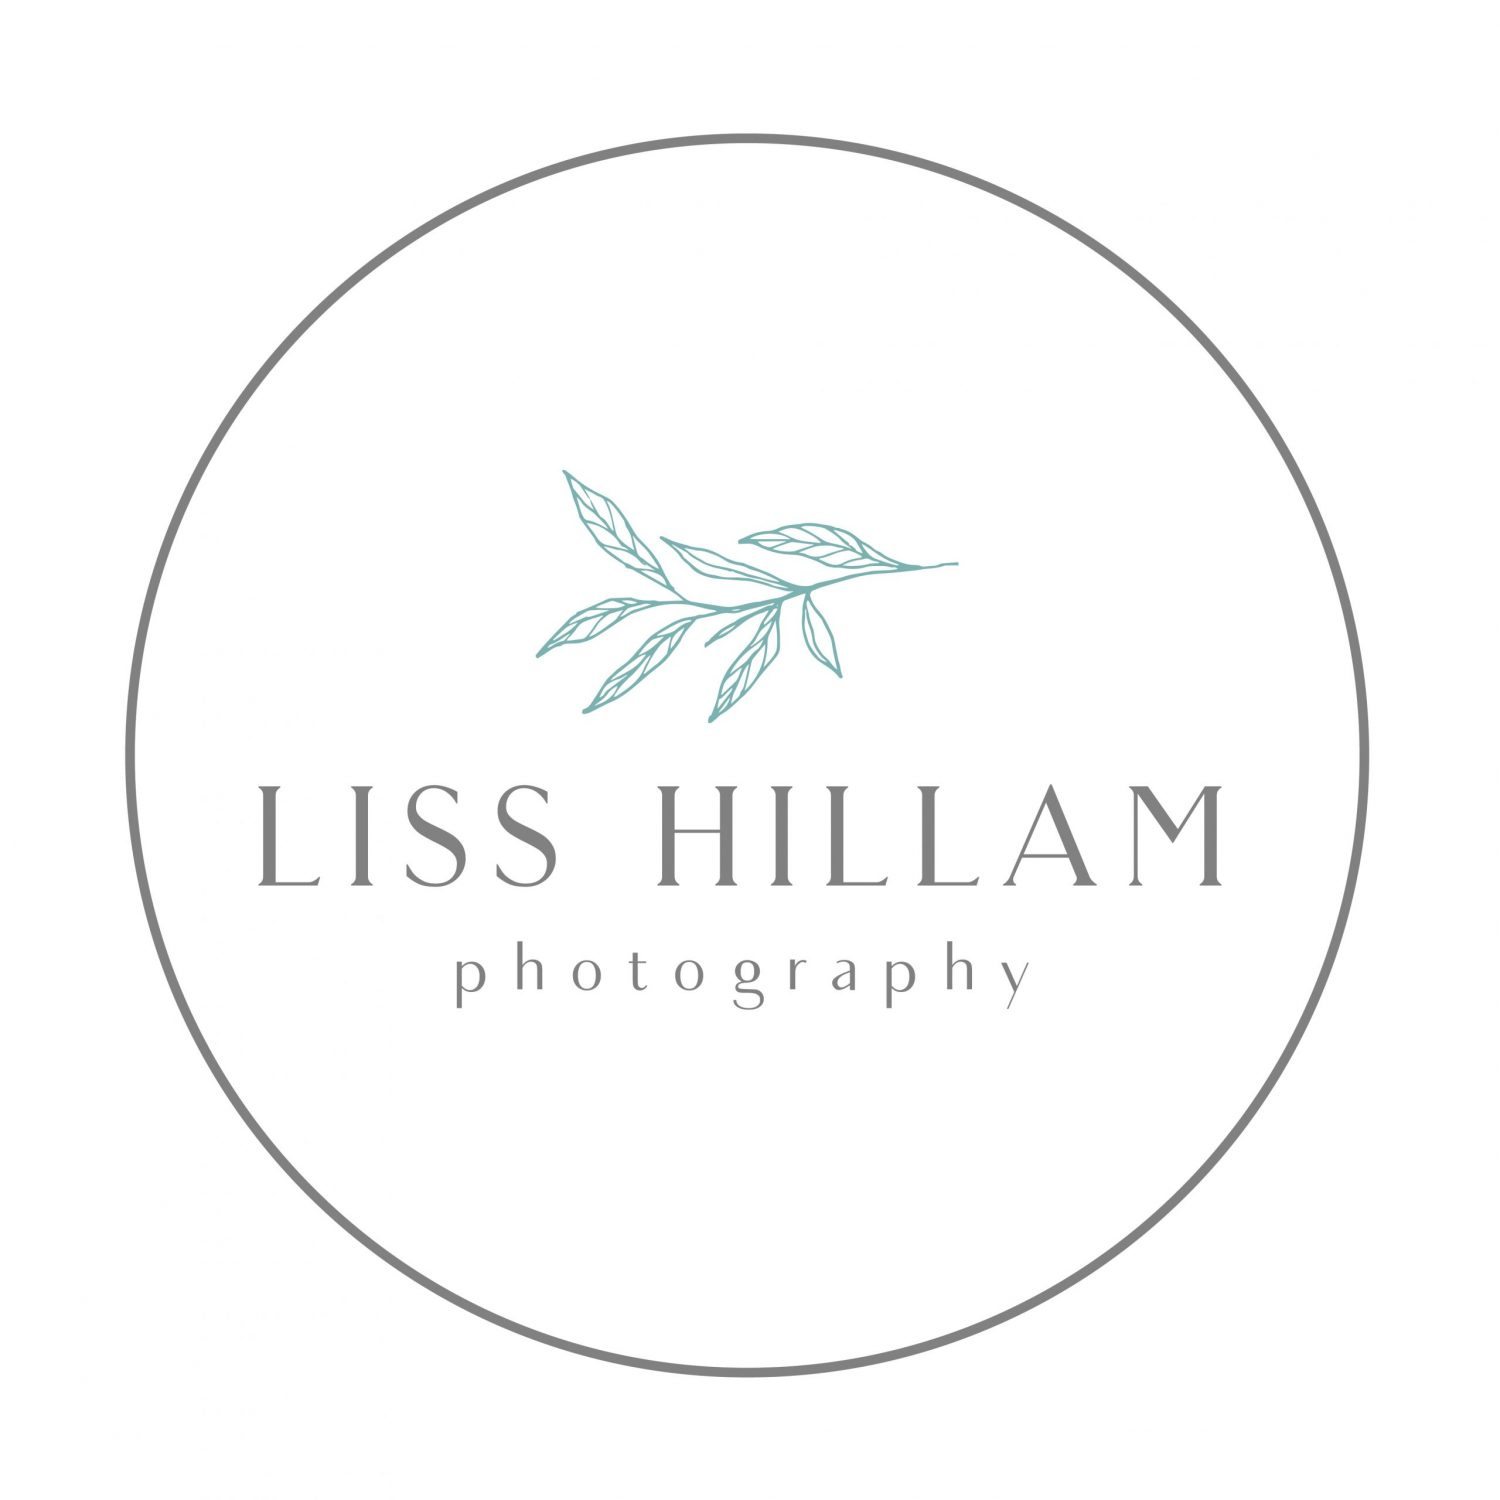 Liss Hillam Photography